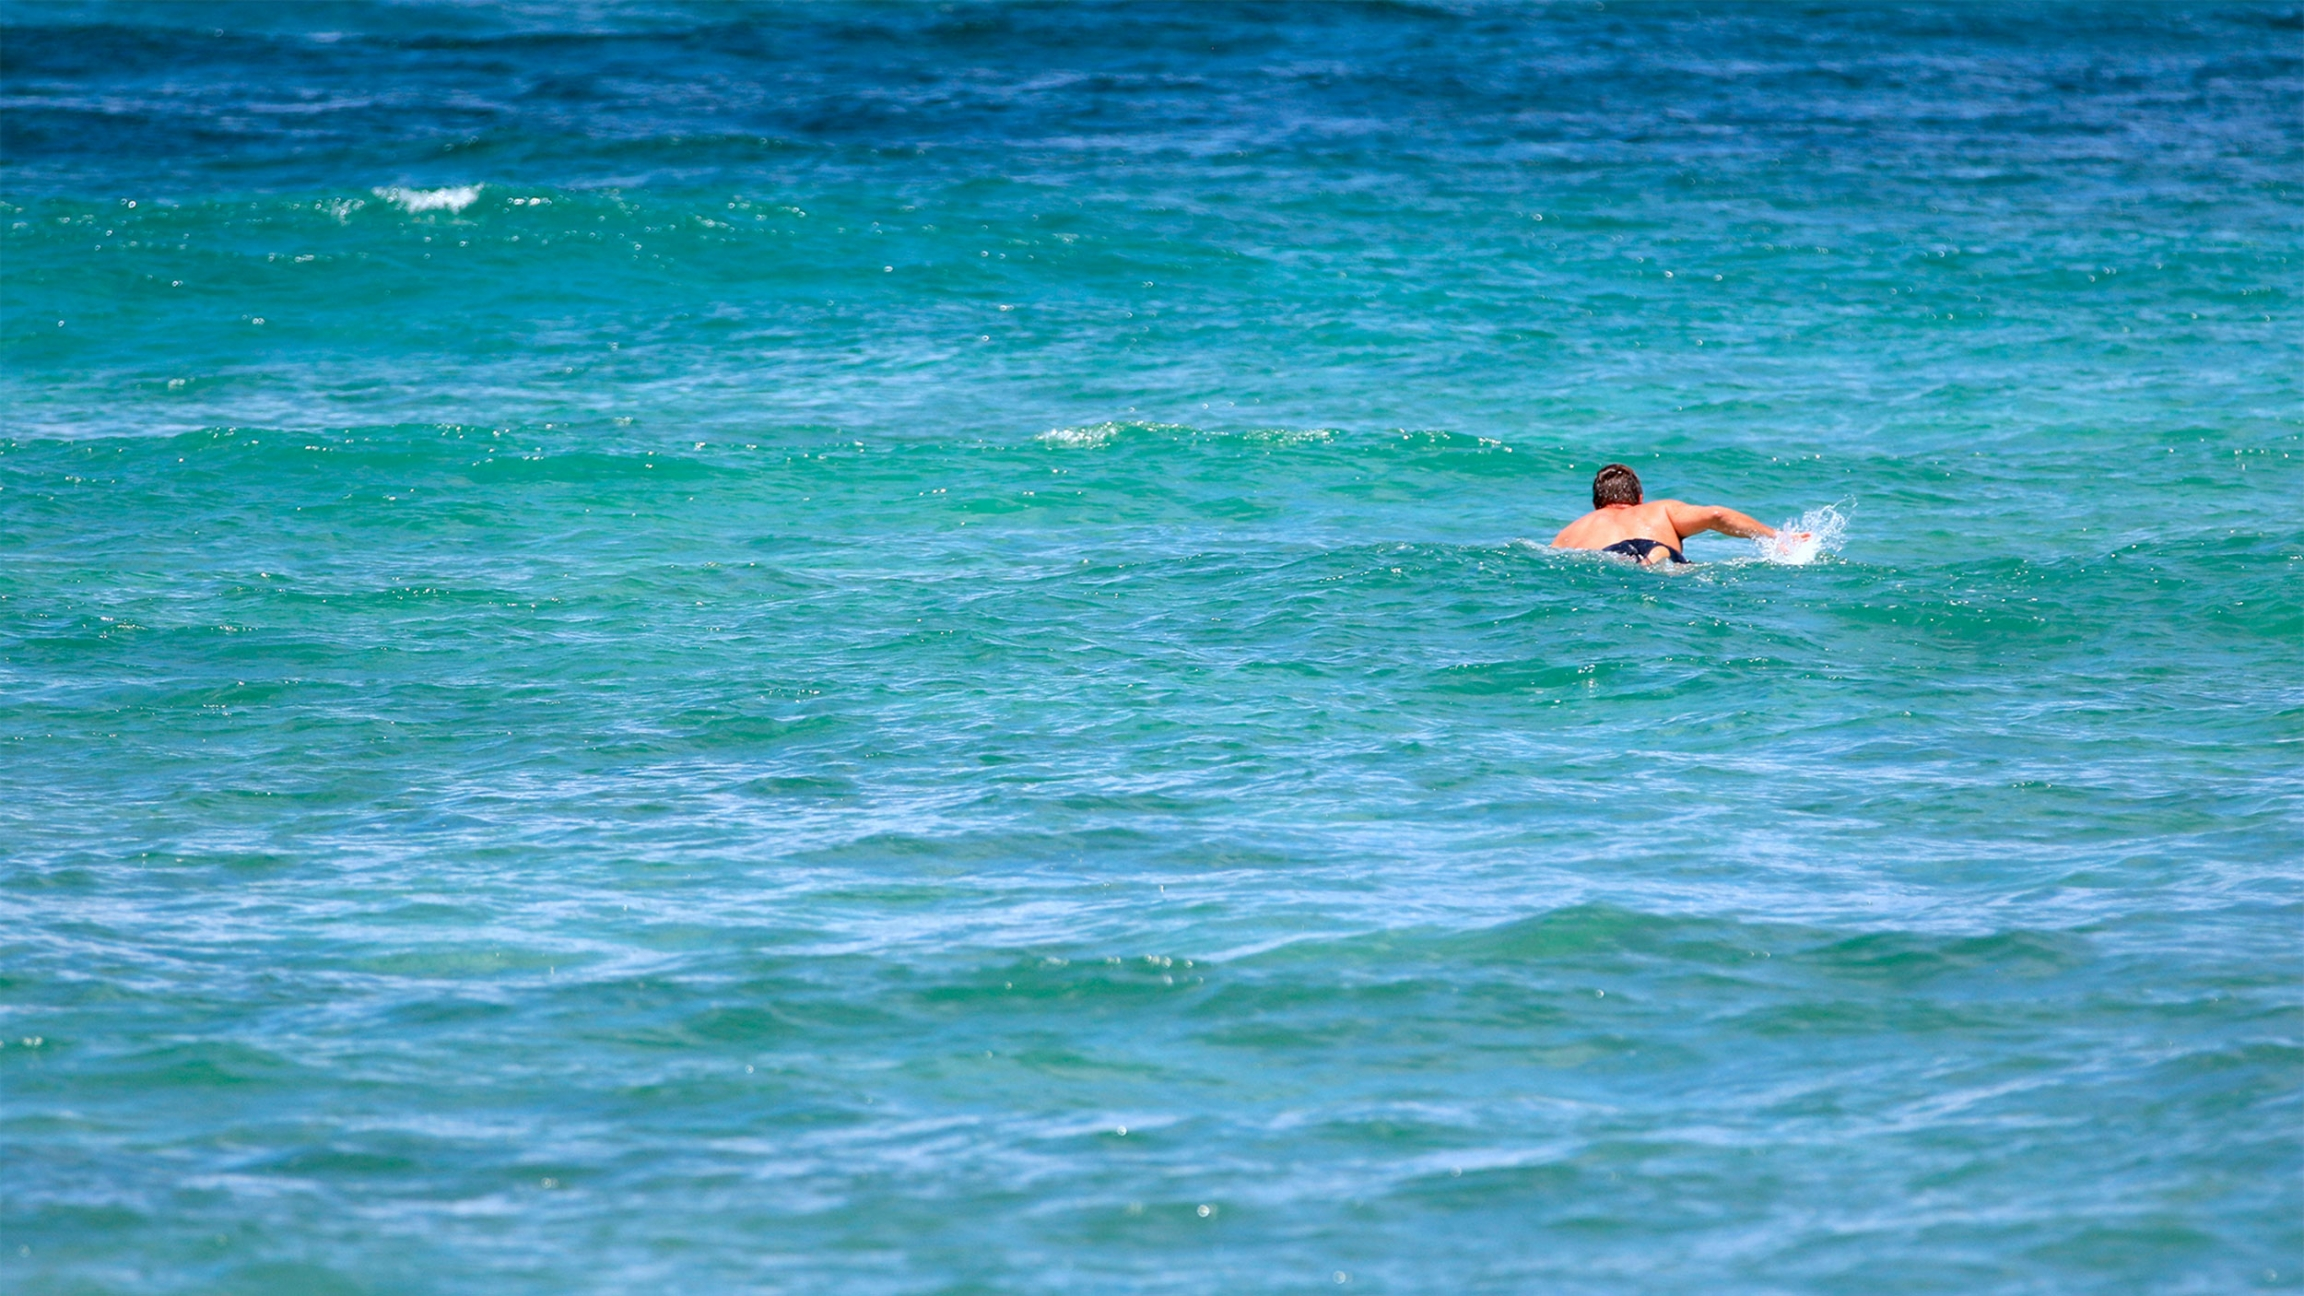 Isaiah Helekunihi Walker paddles out to the blue and green surf in Laie, Hawaii